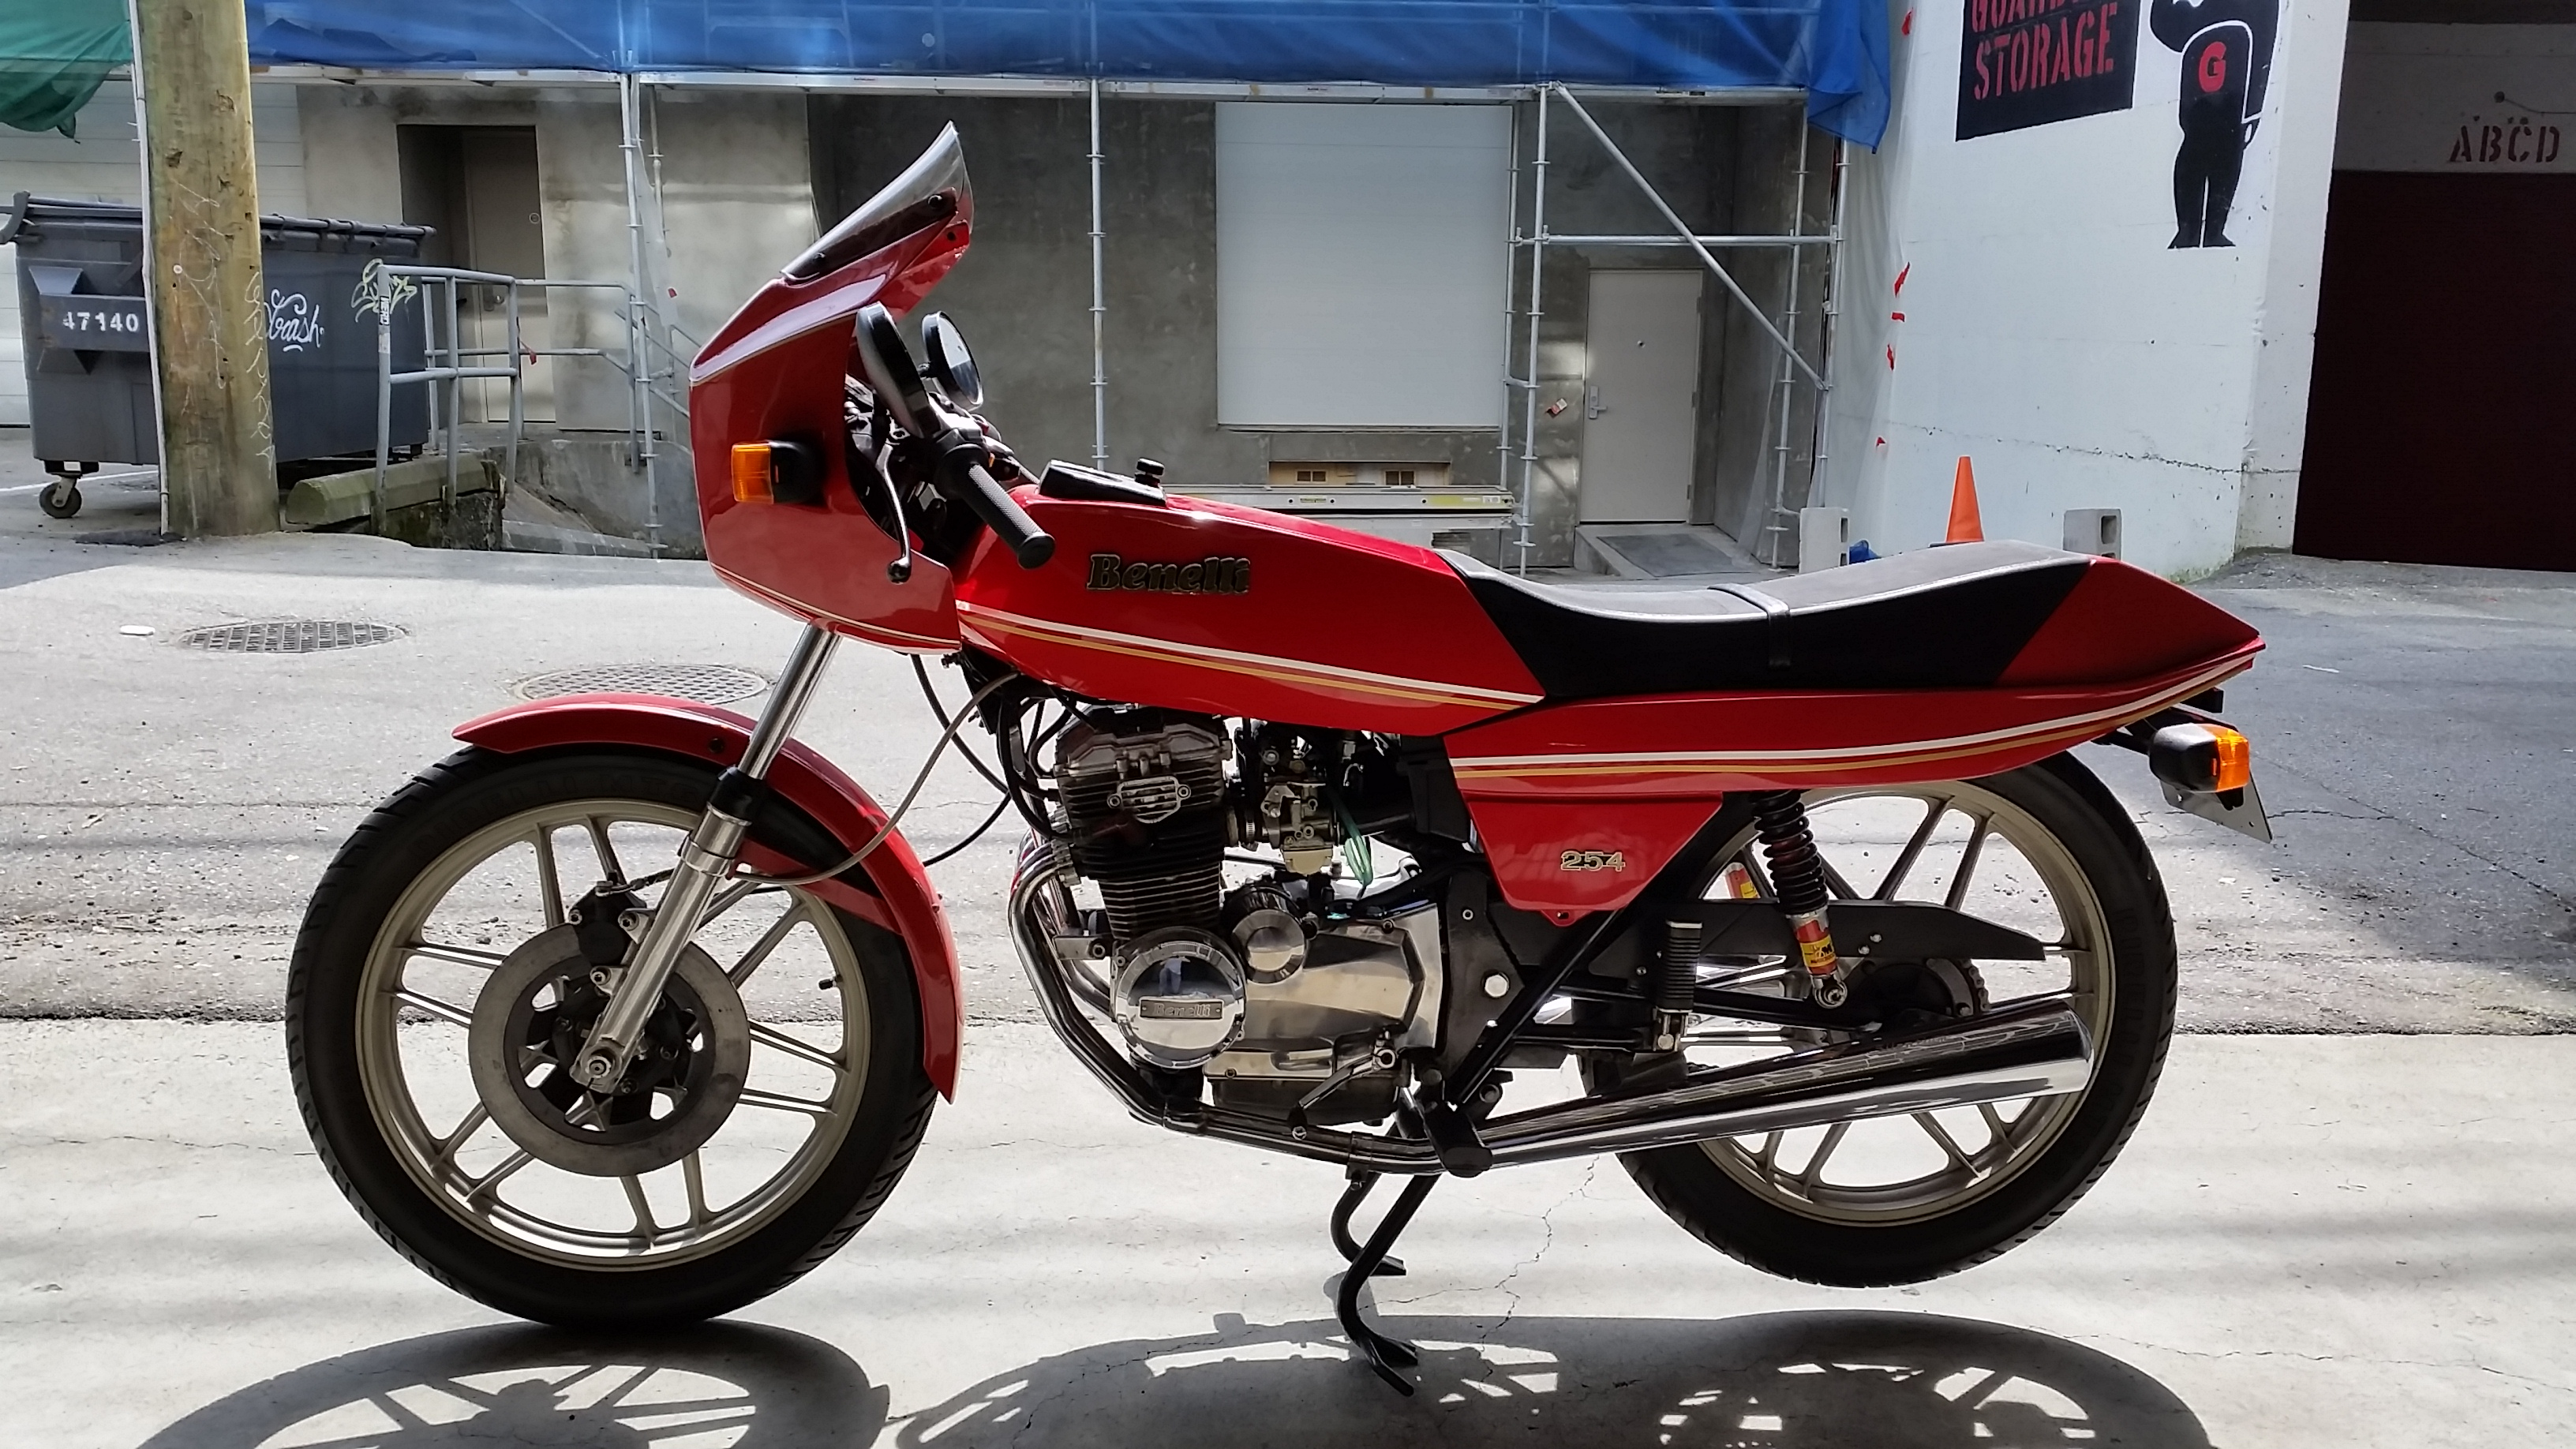 Benelli 254 owner: interested to know of others-20150418_135506.jpg